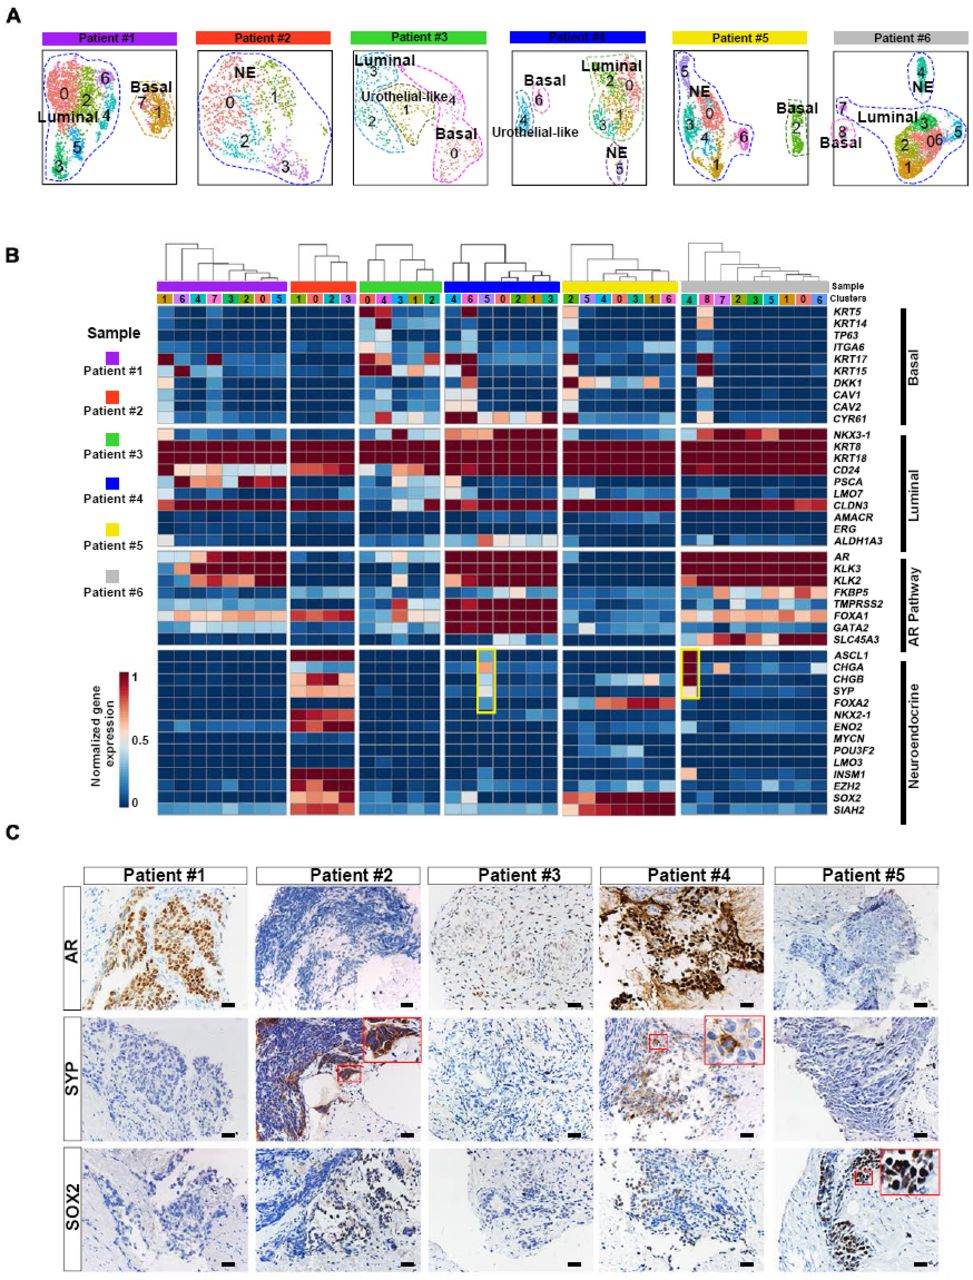 Intratumor heterogeneity analyses reveal different extents of NE differentiation ( A ) UMAP visualization of epithelial cell sub-clusters from each sample. ( B ) Heatmap depicting prostate lineage marker genes and AR pathway gene expression levels in epithelial cell sub-clusters from each sample. Those high-lighted in yellow frame showed cluster 5 in patient #4 and cluster 4 in patient #6 was NE sub-clusters. ( C ) Immunohistochemistry (IHC) staining for AR, SYP and SOX2 in sections from 5 samples. Scale bars represent 50μm.